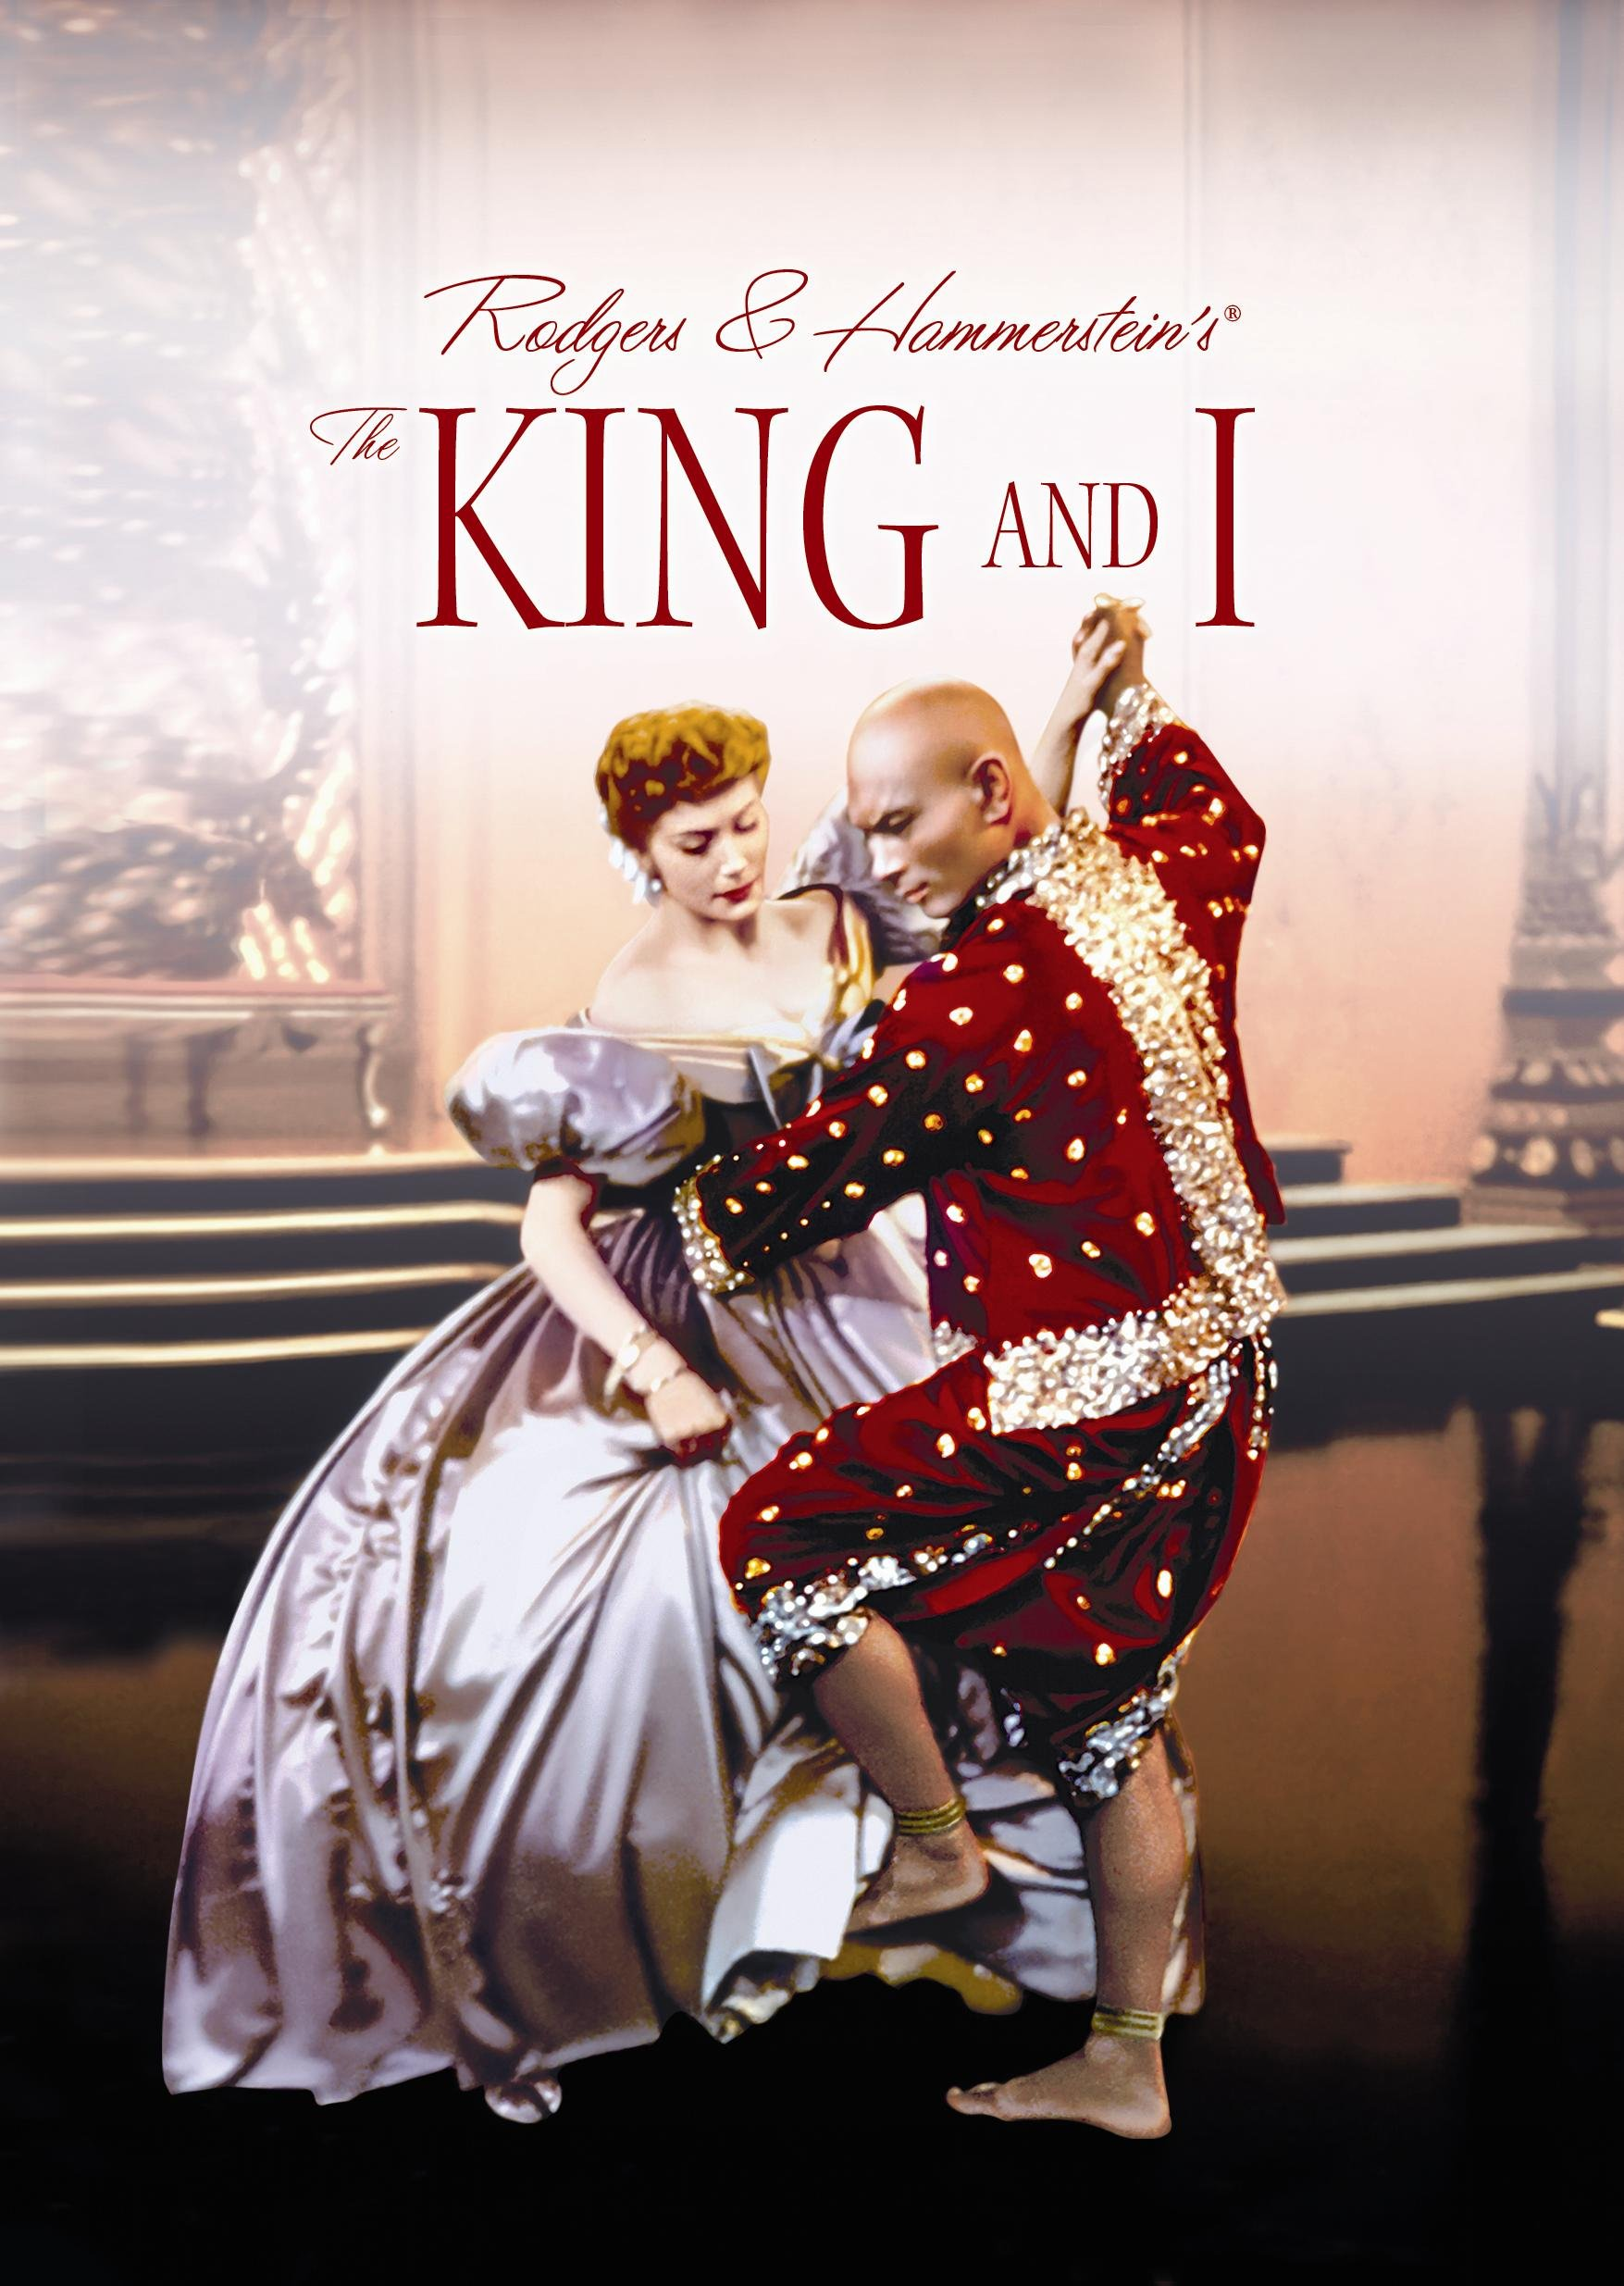 Amazon.com: The King and I: Deborah Kerr, Yul Brynner, Rita Moreno ...